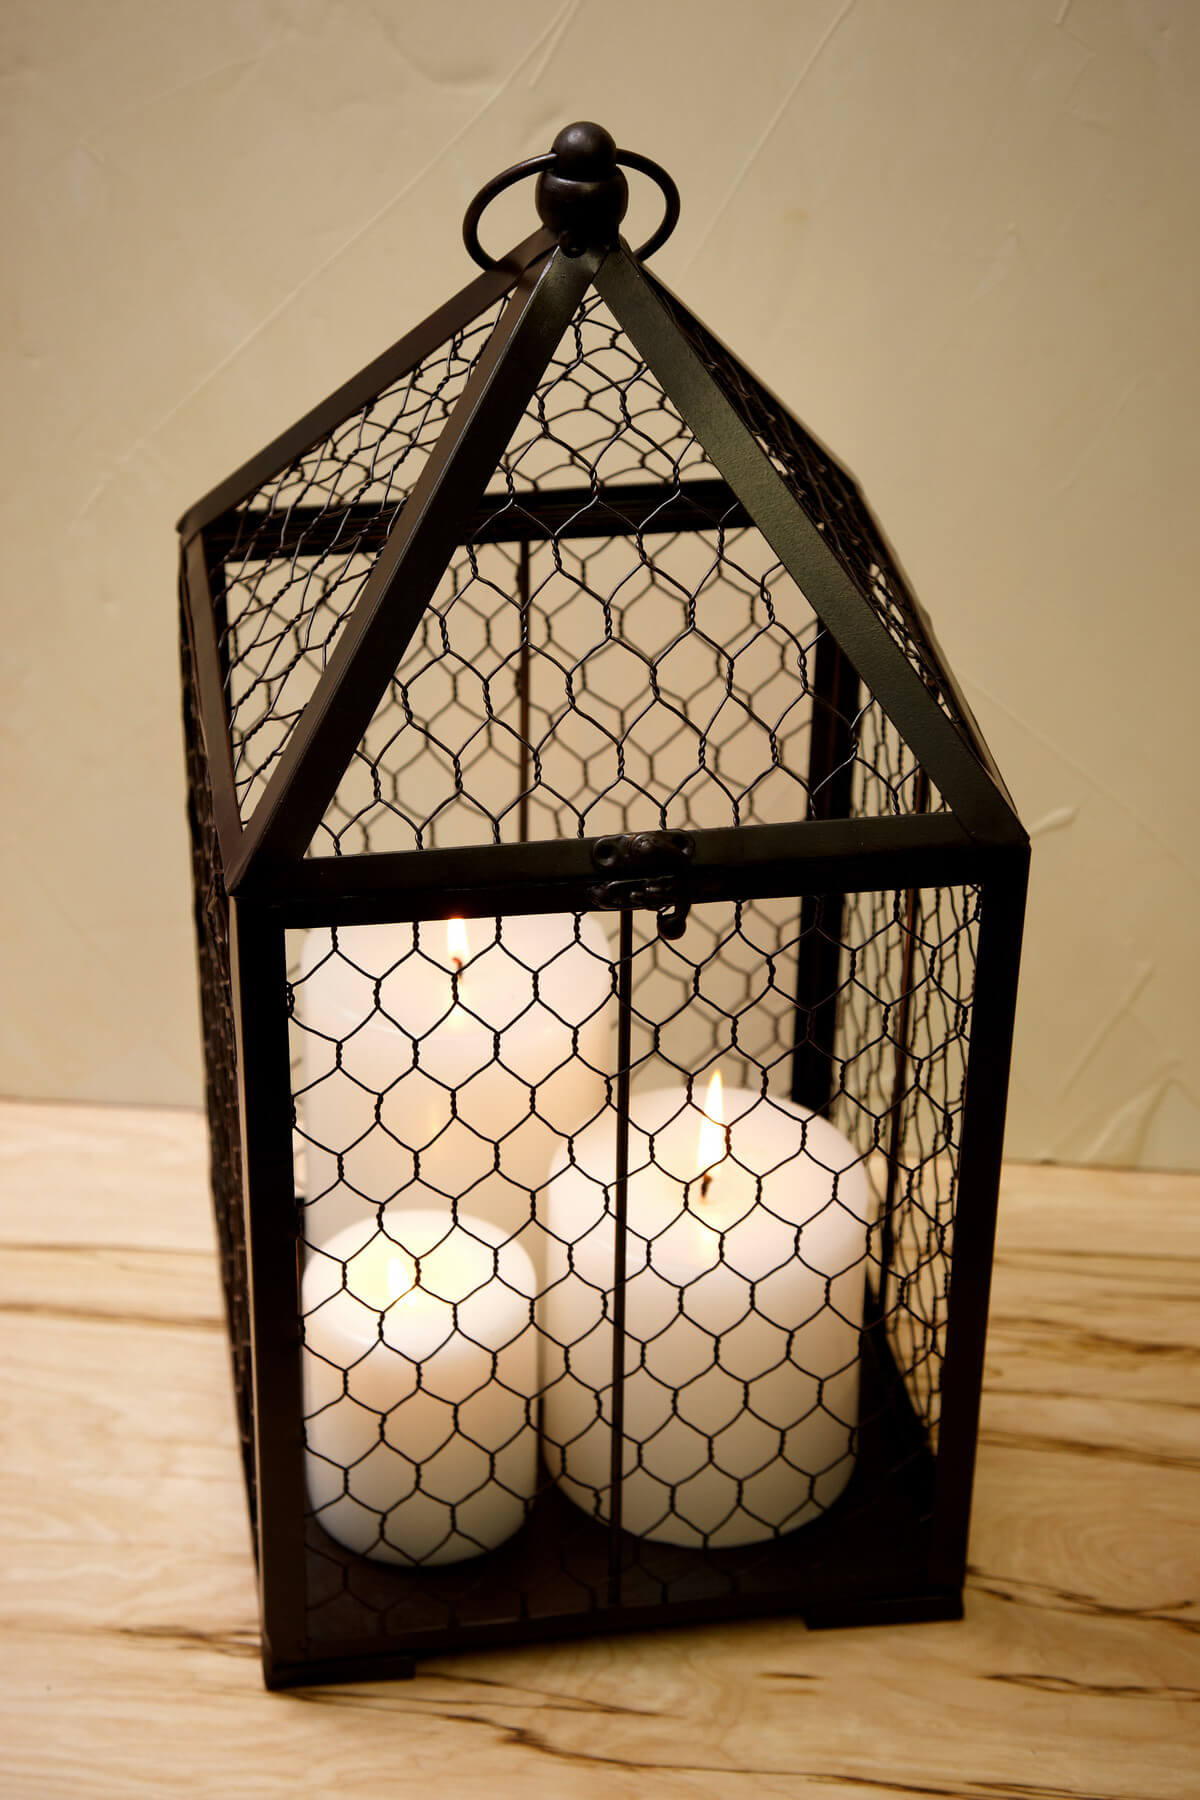 Chicken Wire Topiary Cage 17 75in